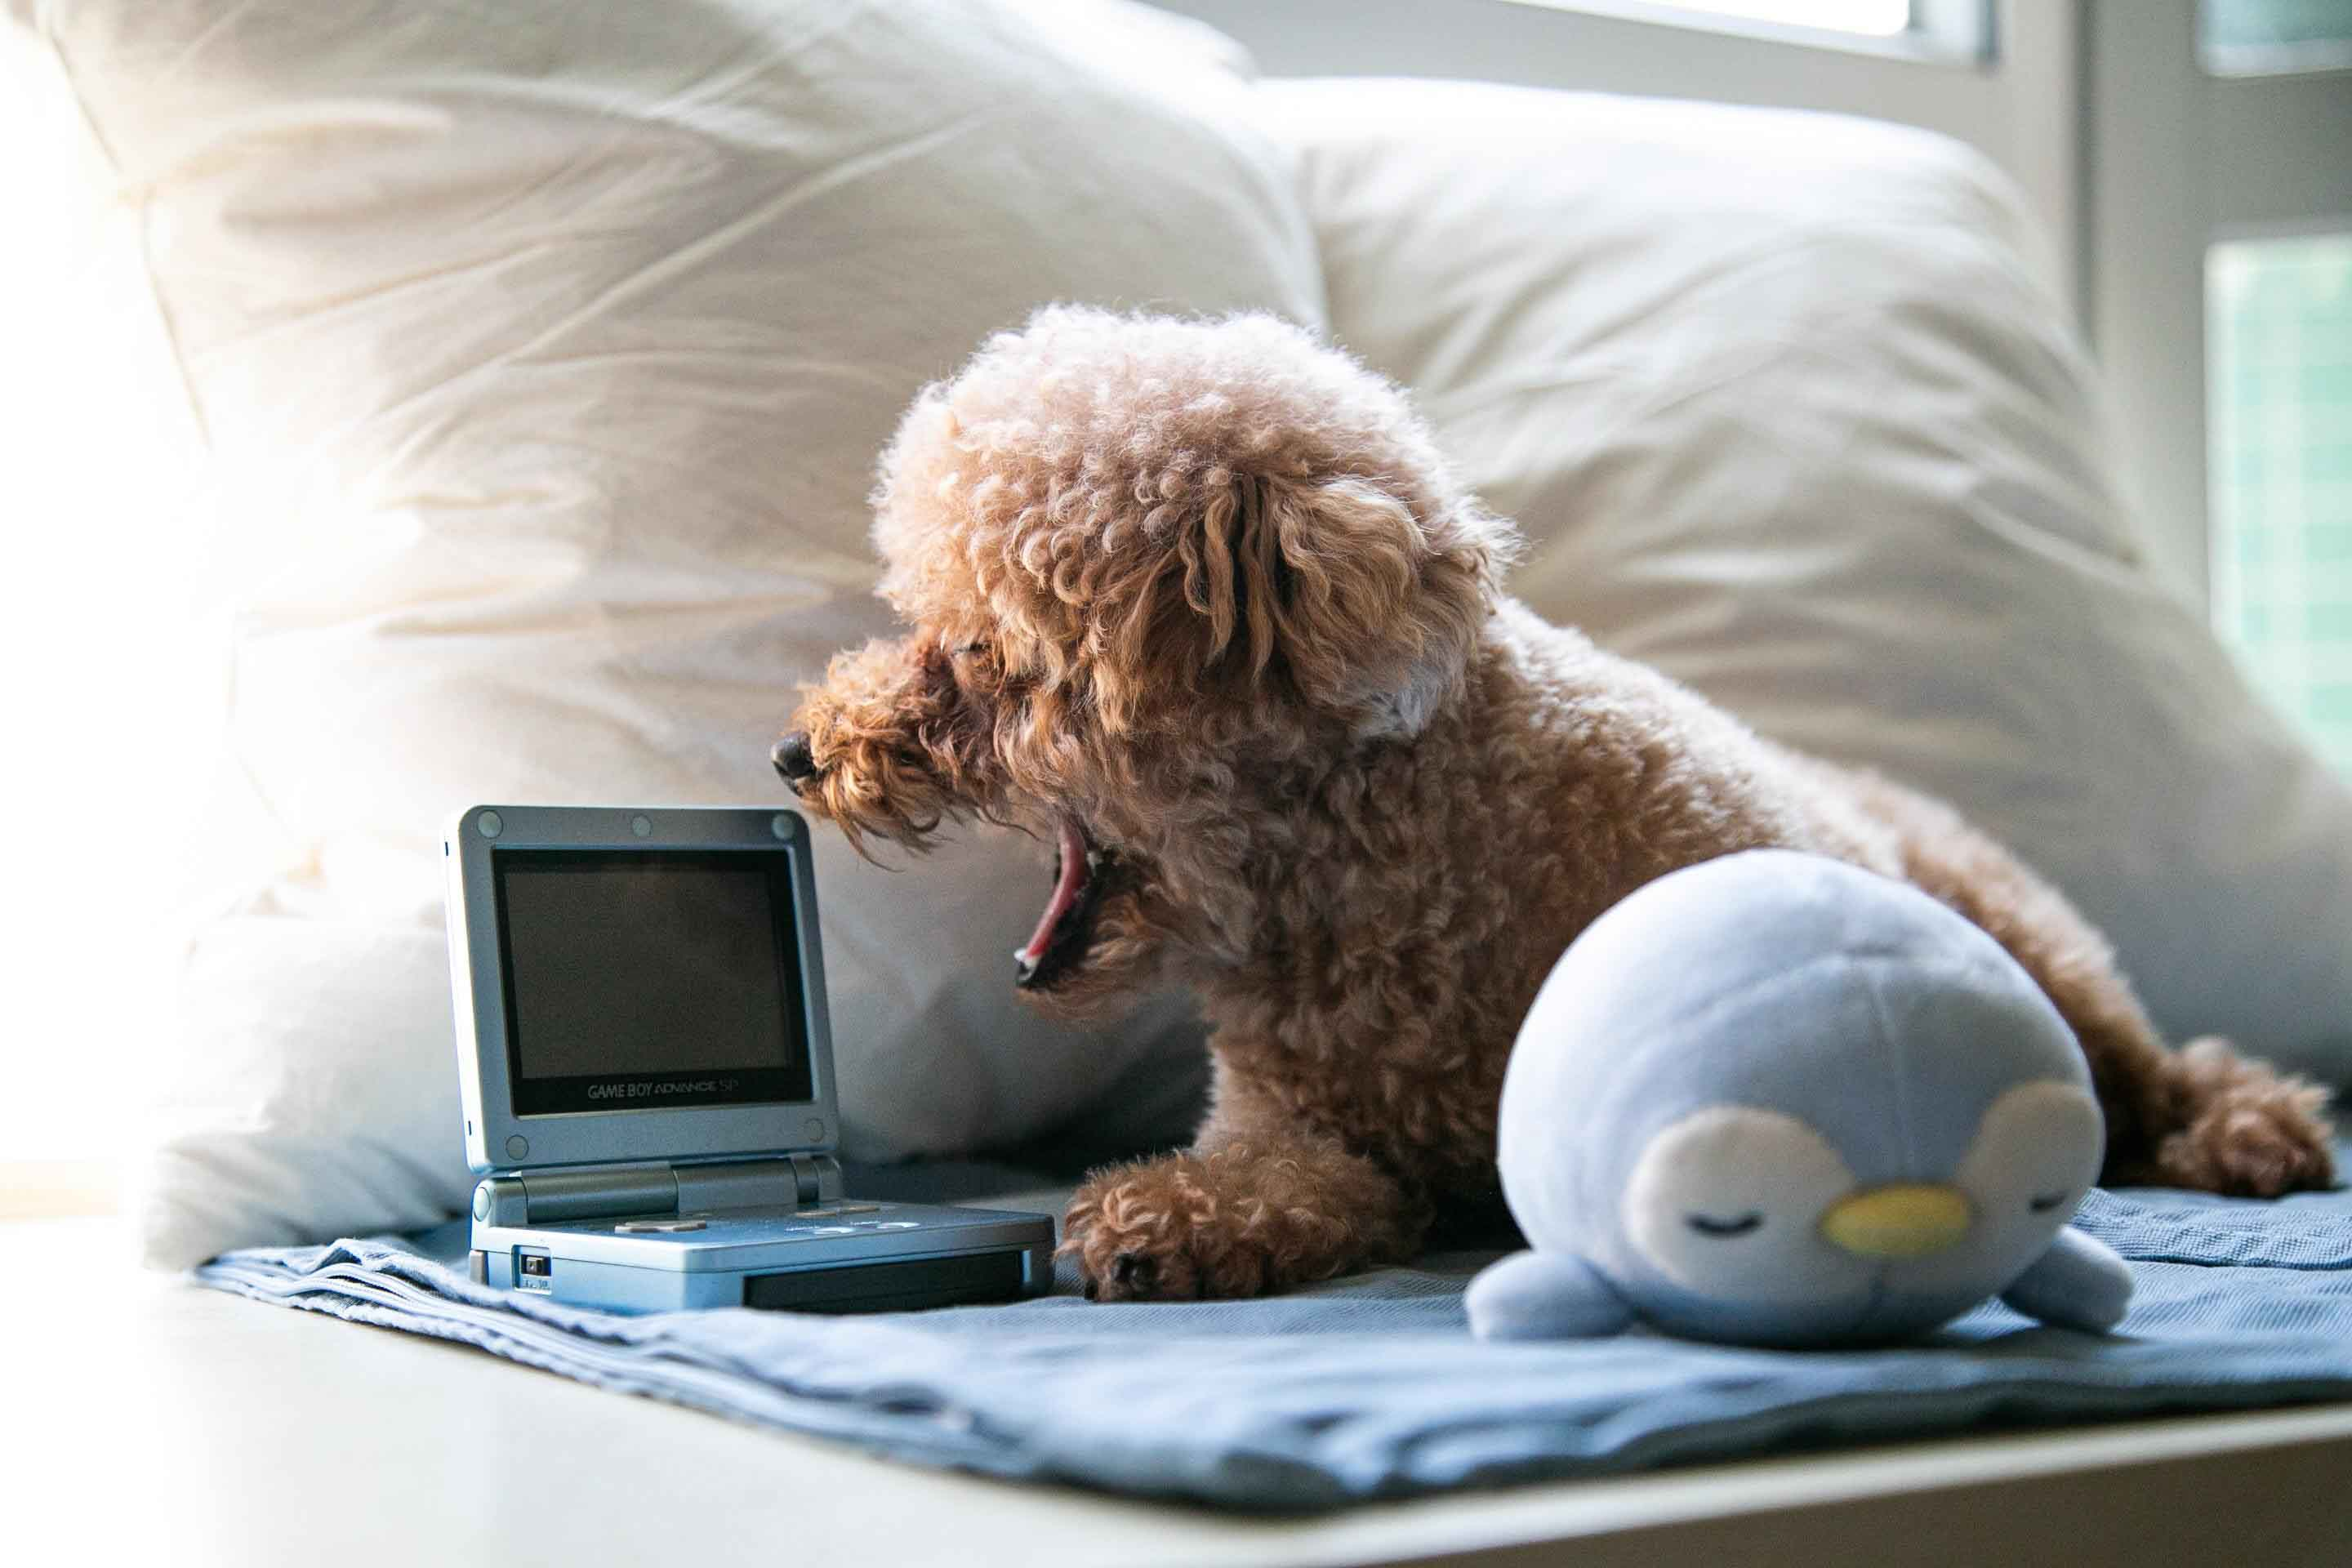 toy poodle playing with toy laptop